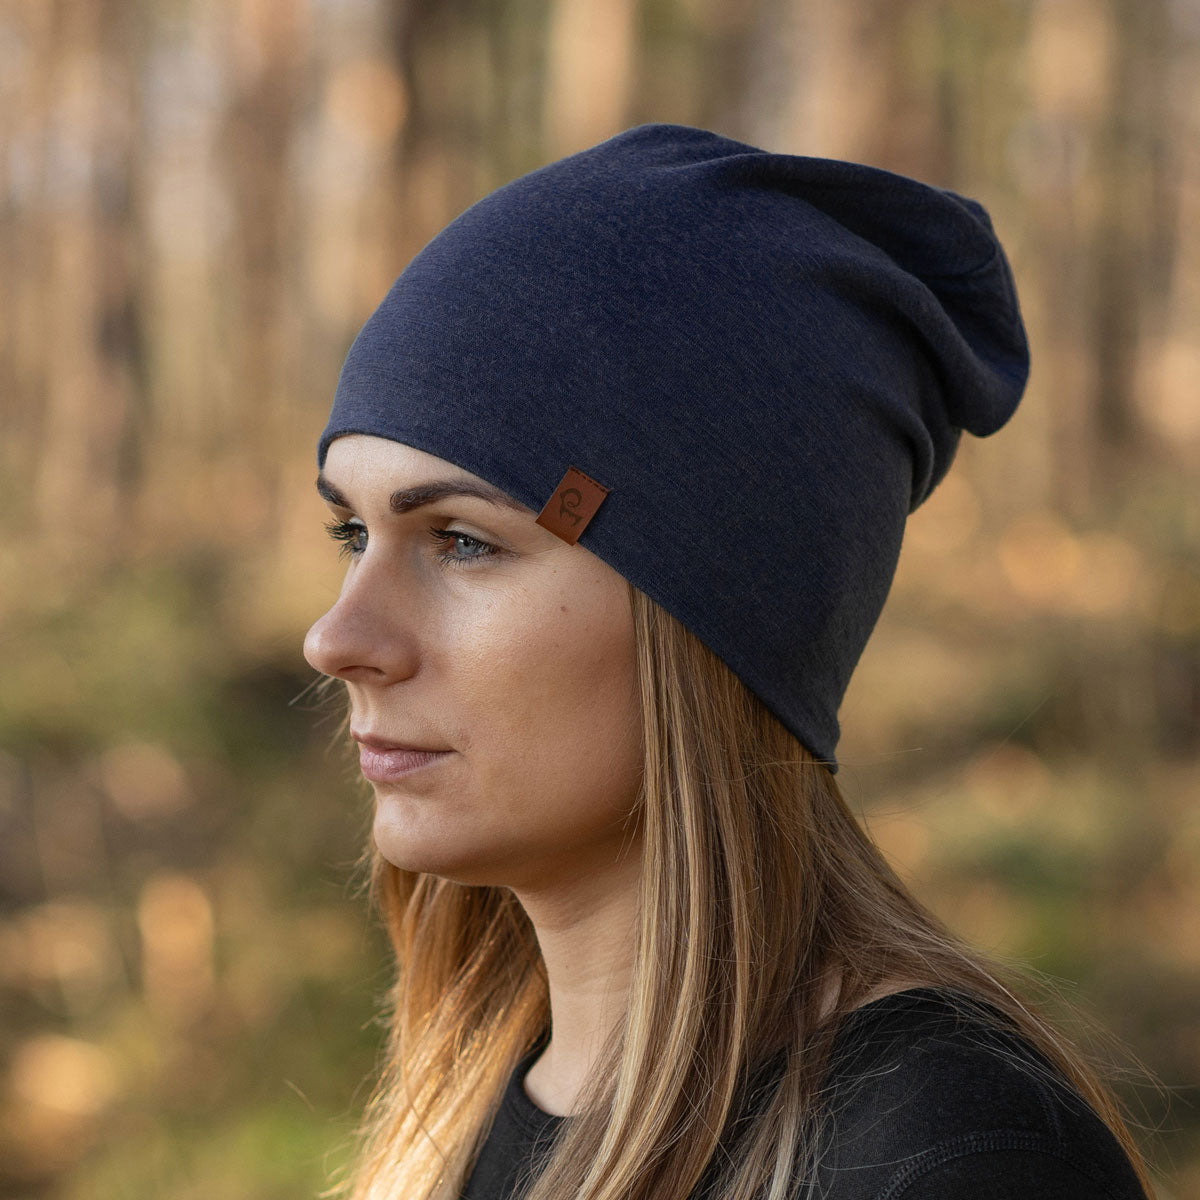 menique merino women's hat beanie dark blue